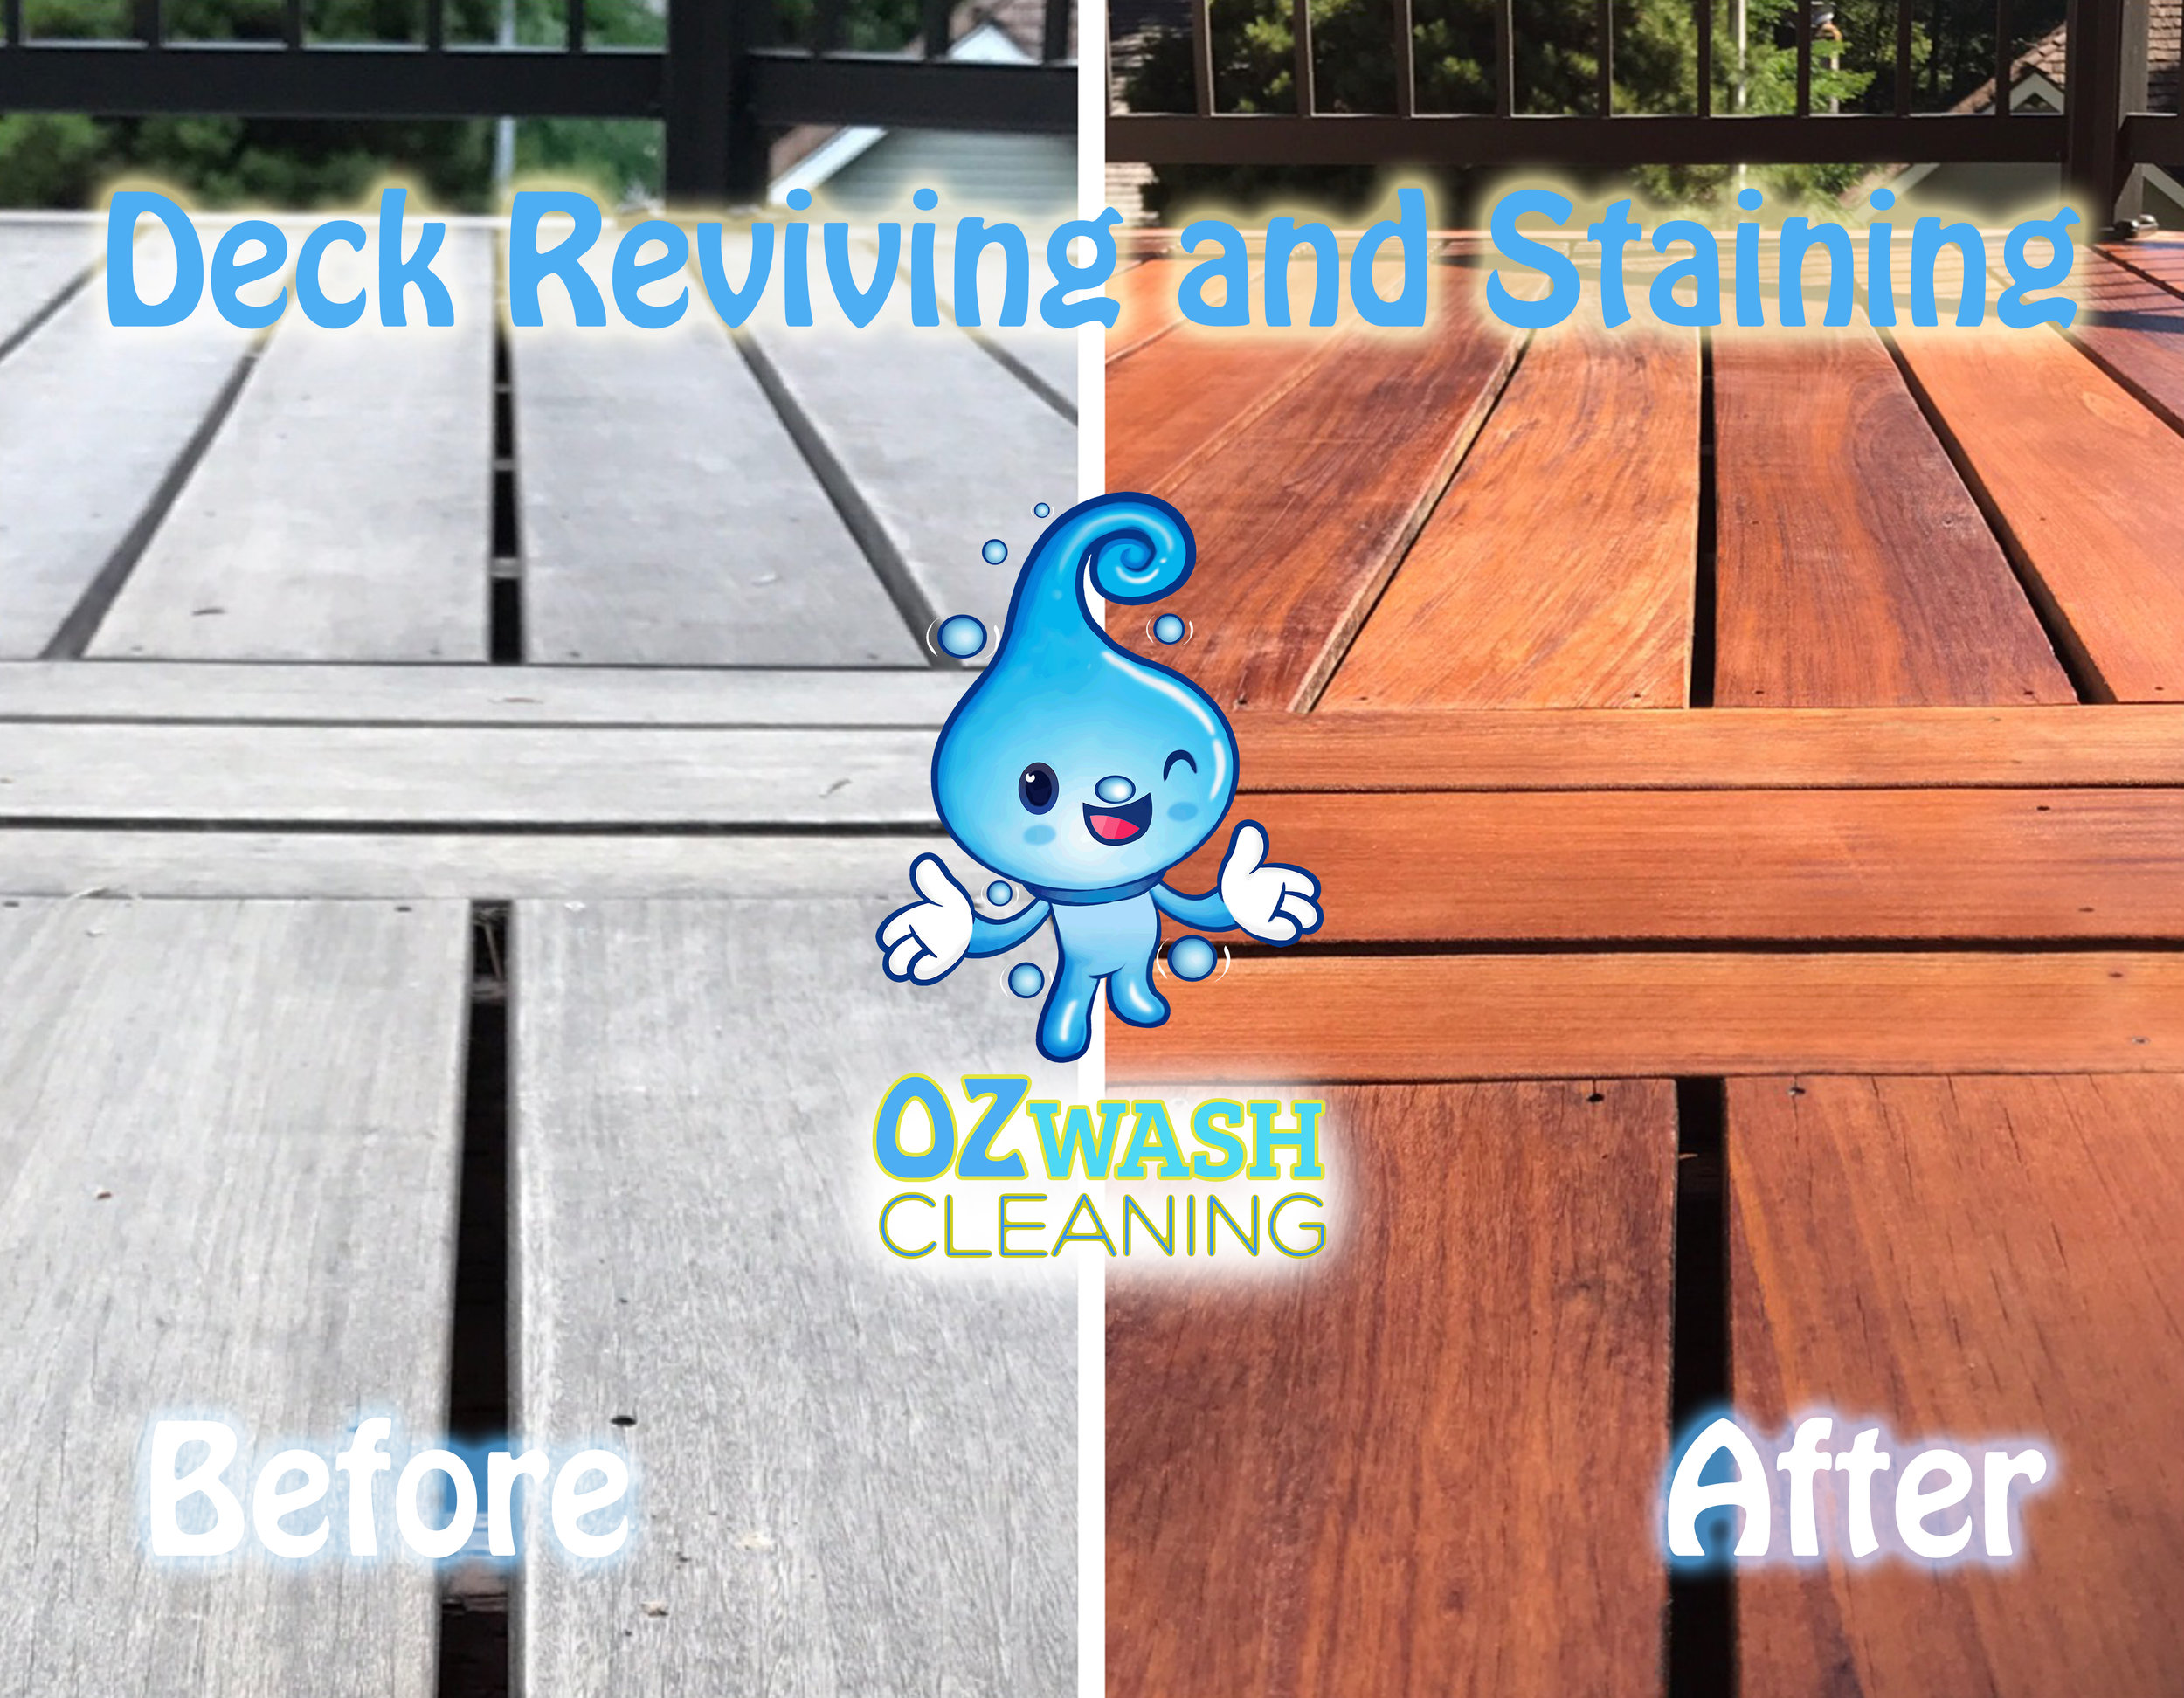 DeckReviving&Staining.jpg